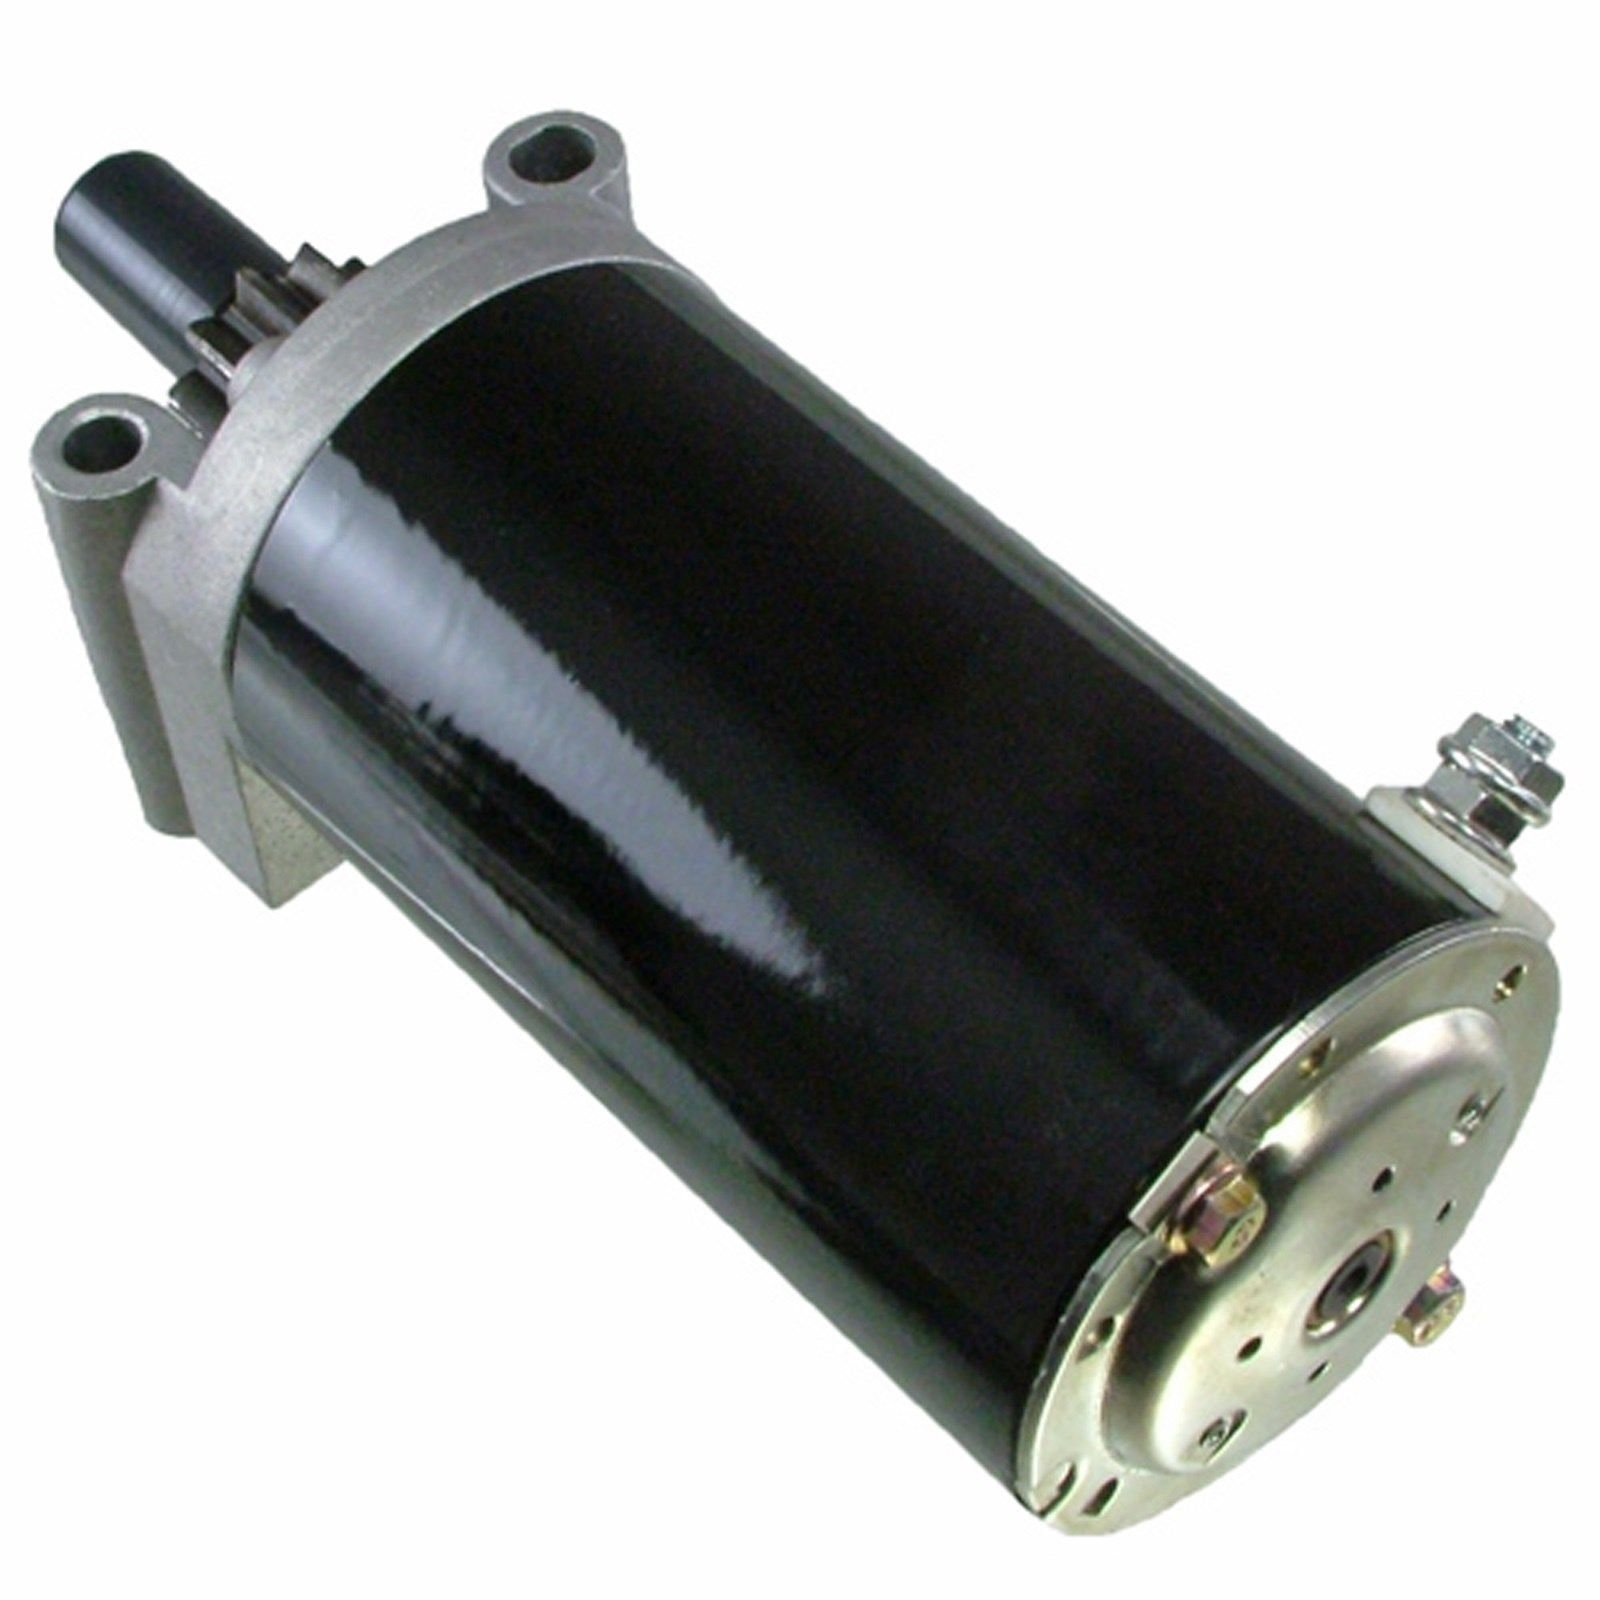 NEW STARTER MOTOR FOR CUB CADET KOHLER Courage Twin 32-098-01 3209801, 3209803, 3209801S, 3209803S by EMS Global Direct